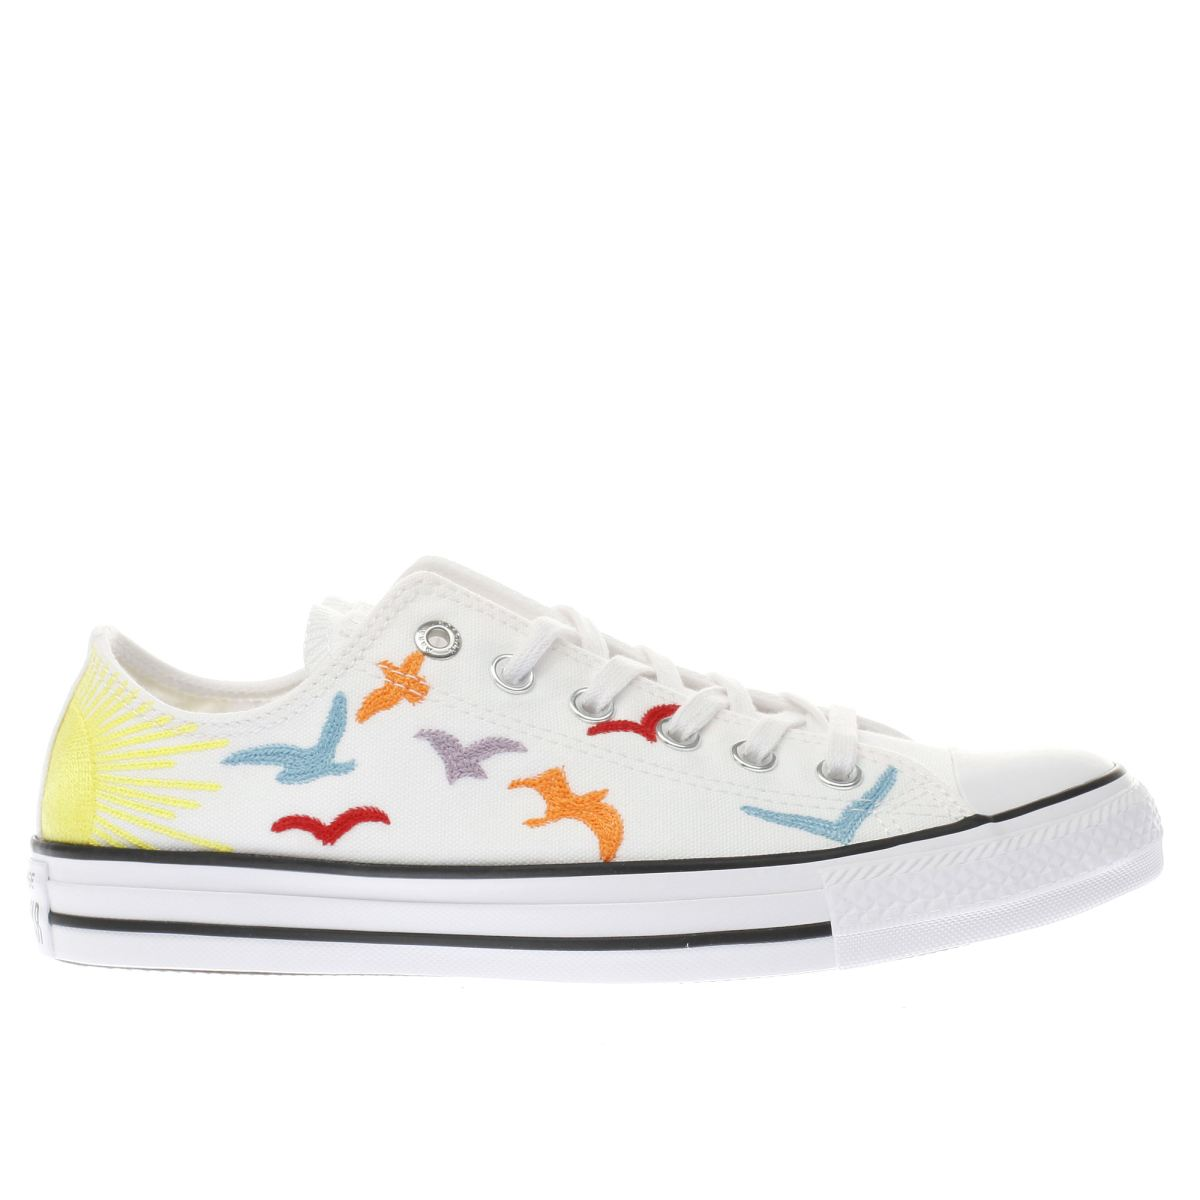 converse white all star mara hoffman ox trainers